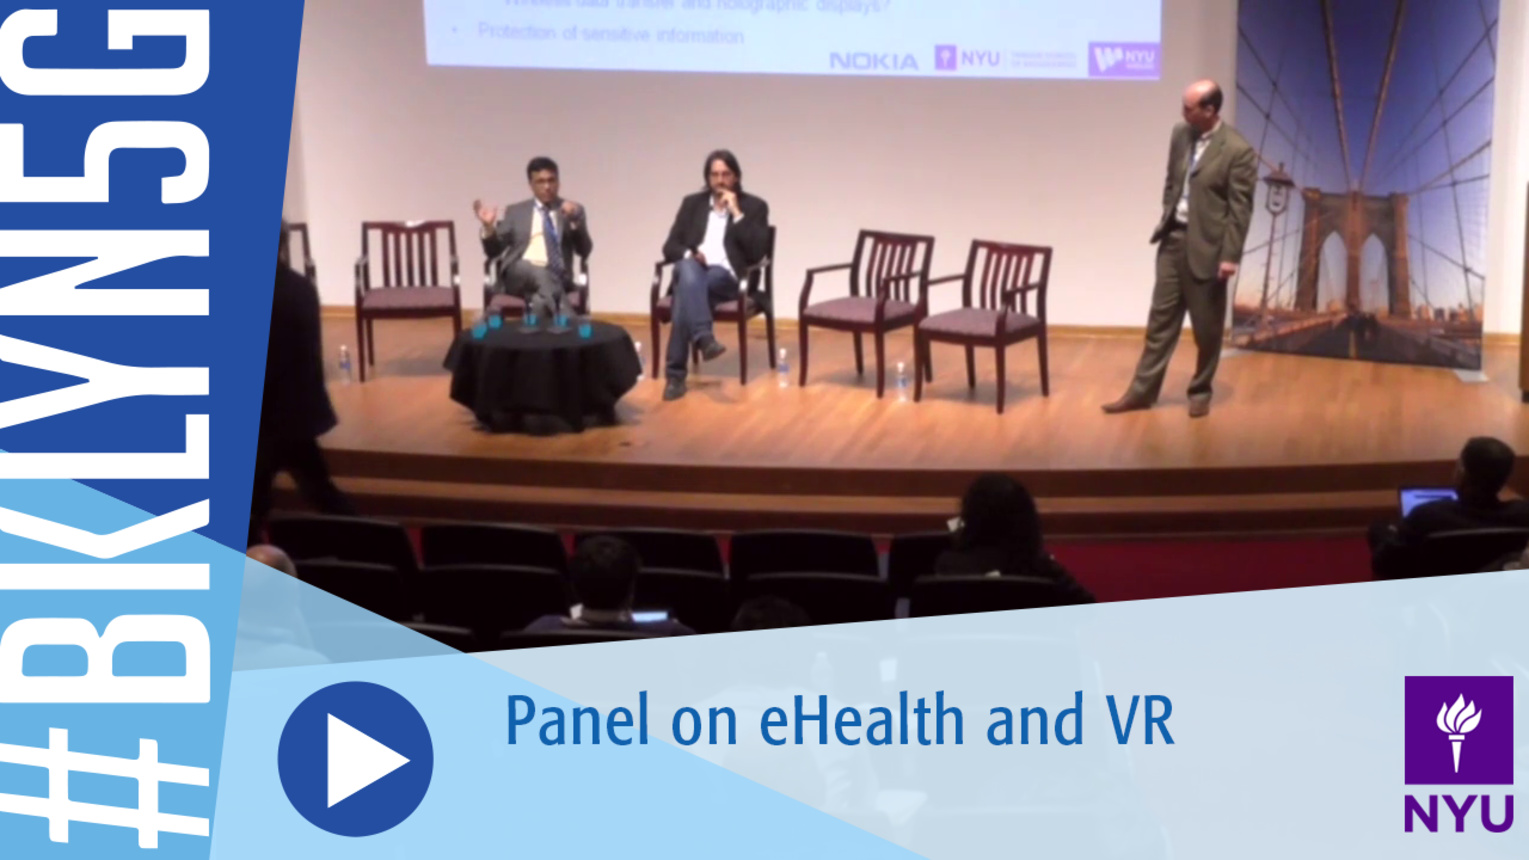 Brooklyn 5G 2016: Panel on eHealth and Virtual Reality